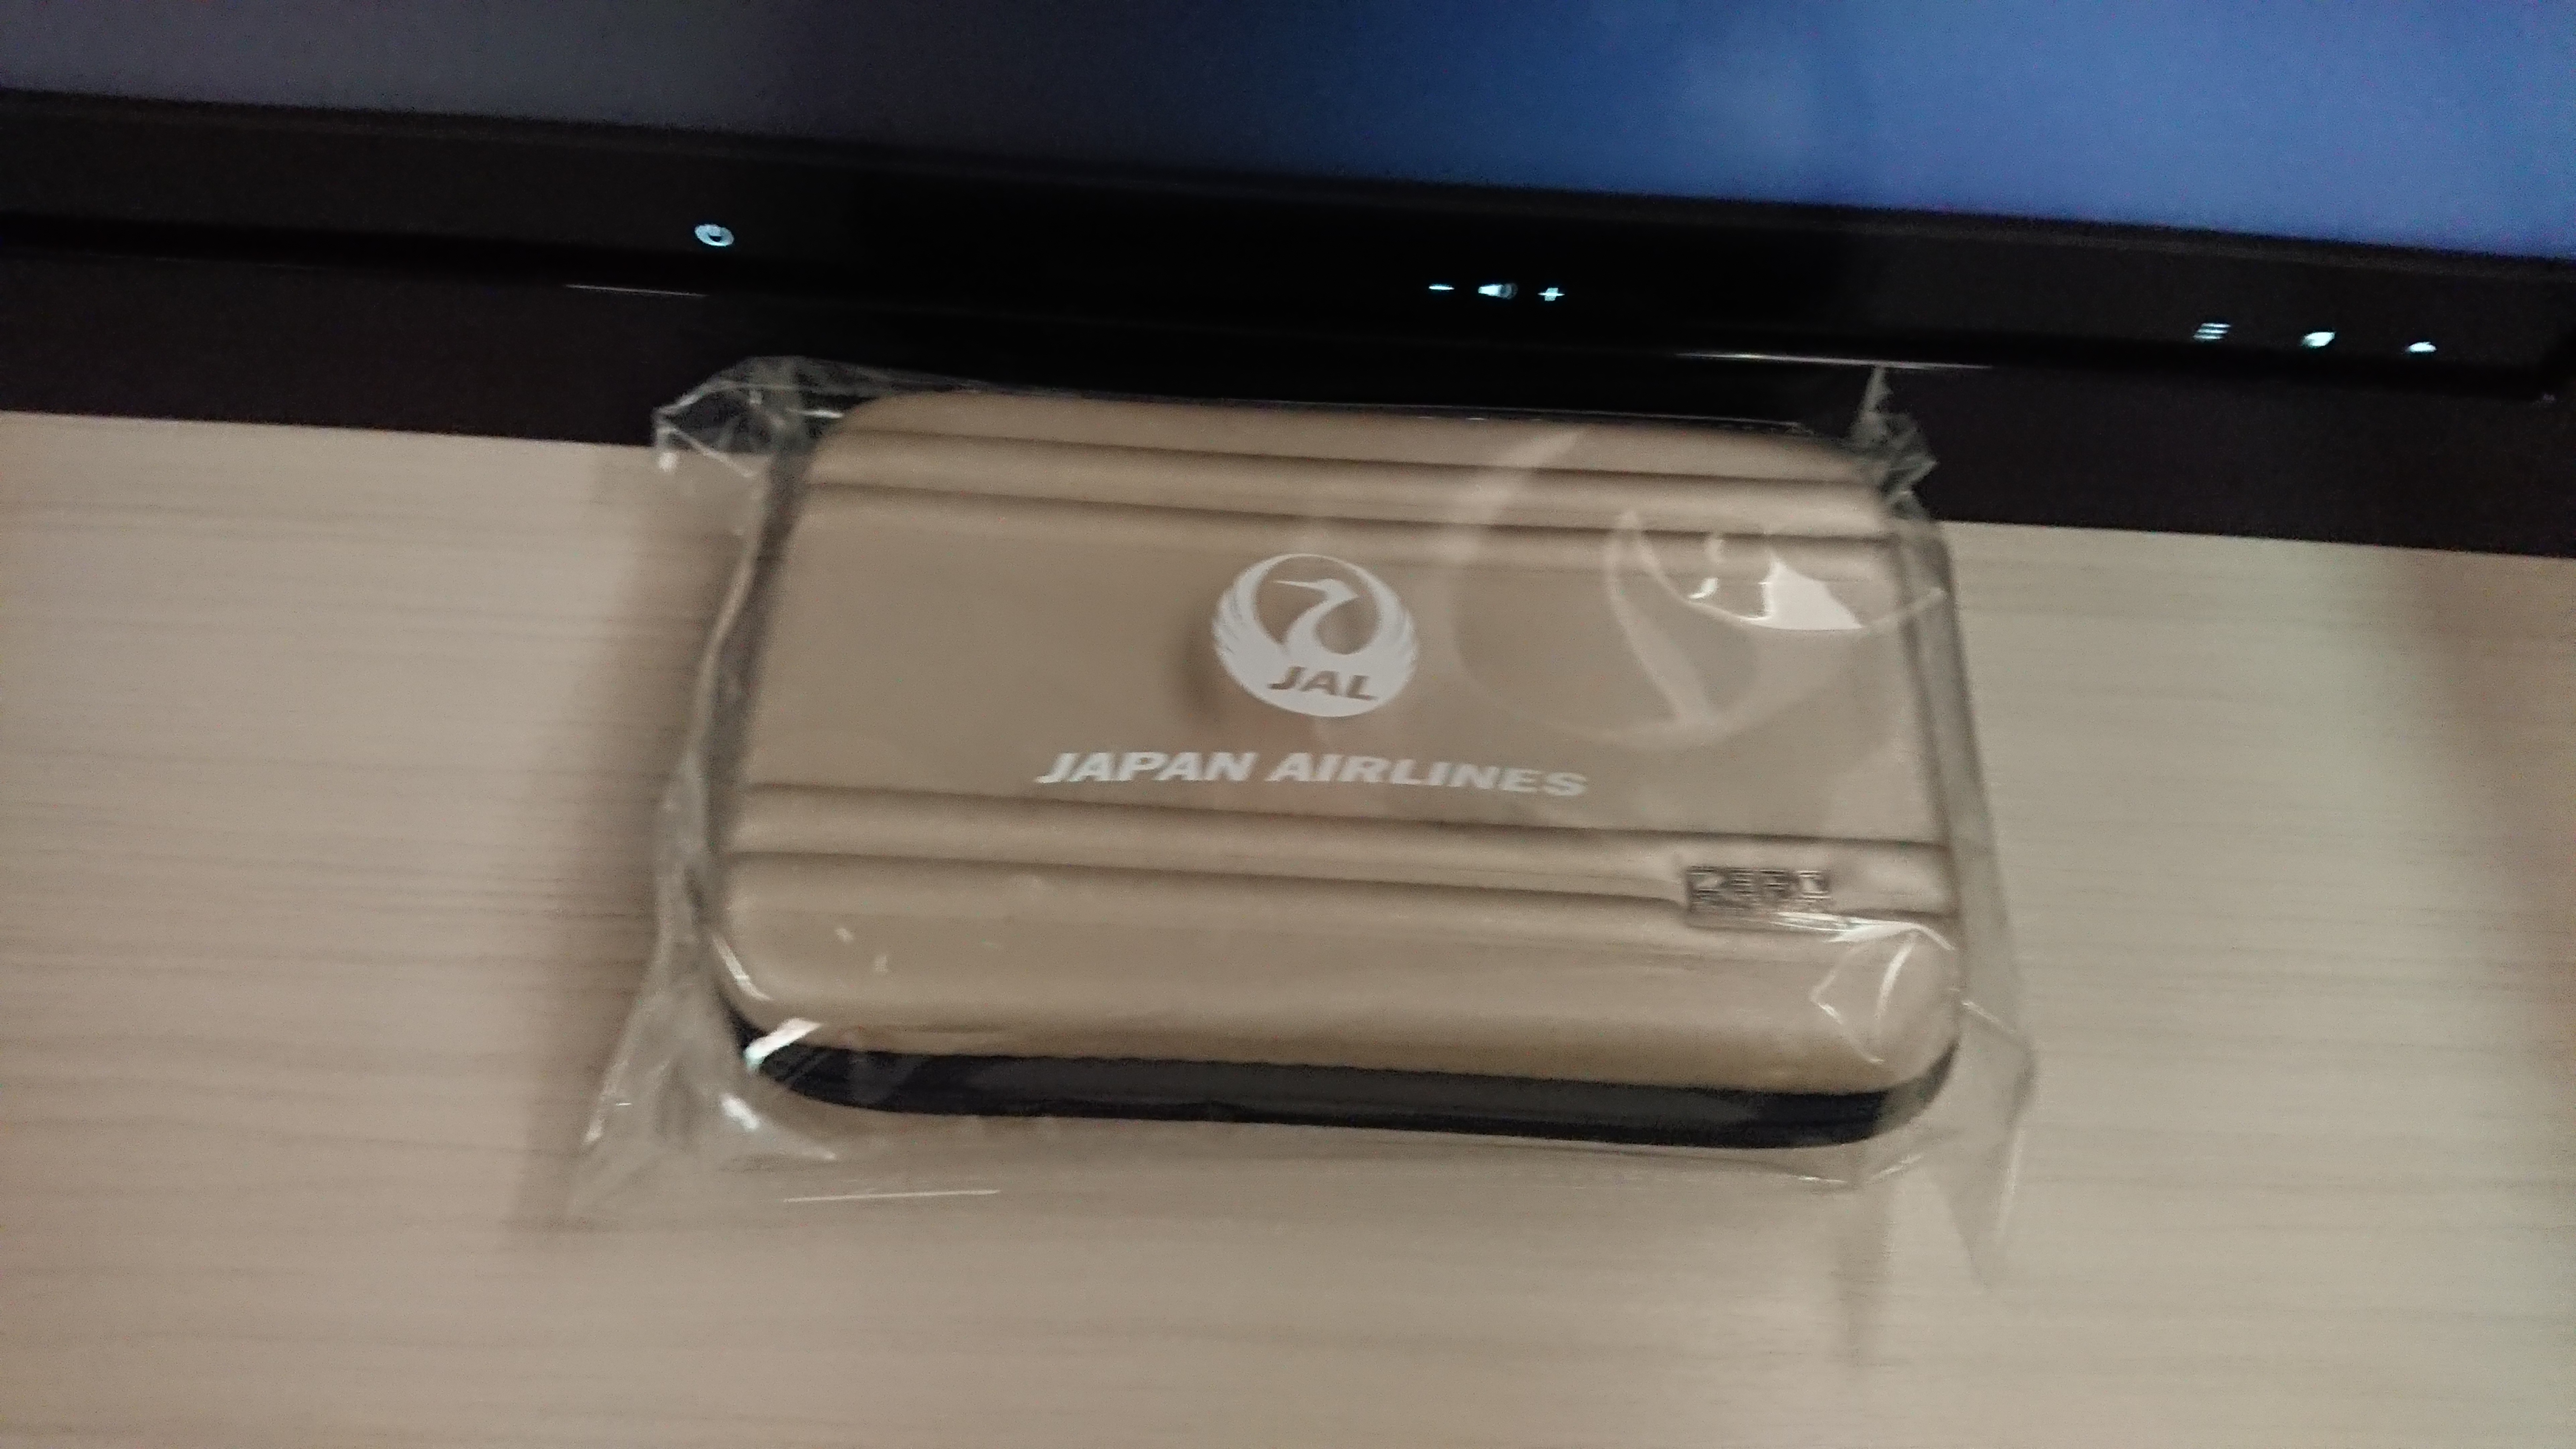 Japan Airlines Business Class Amenity Kit